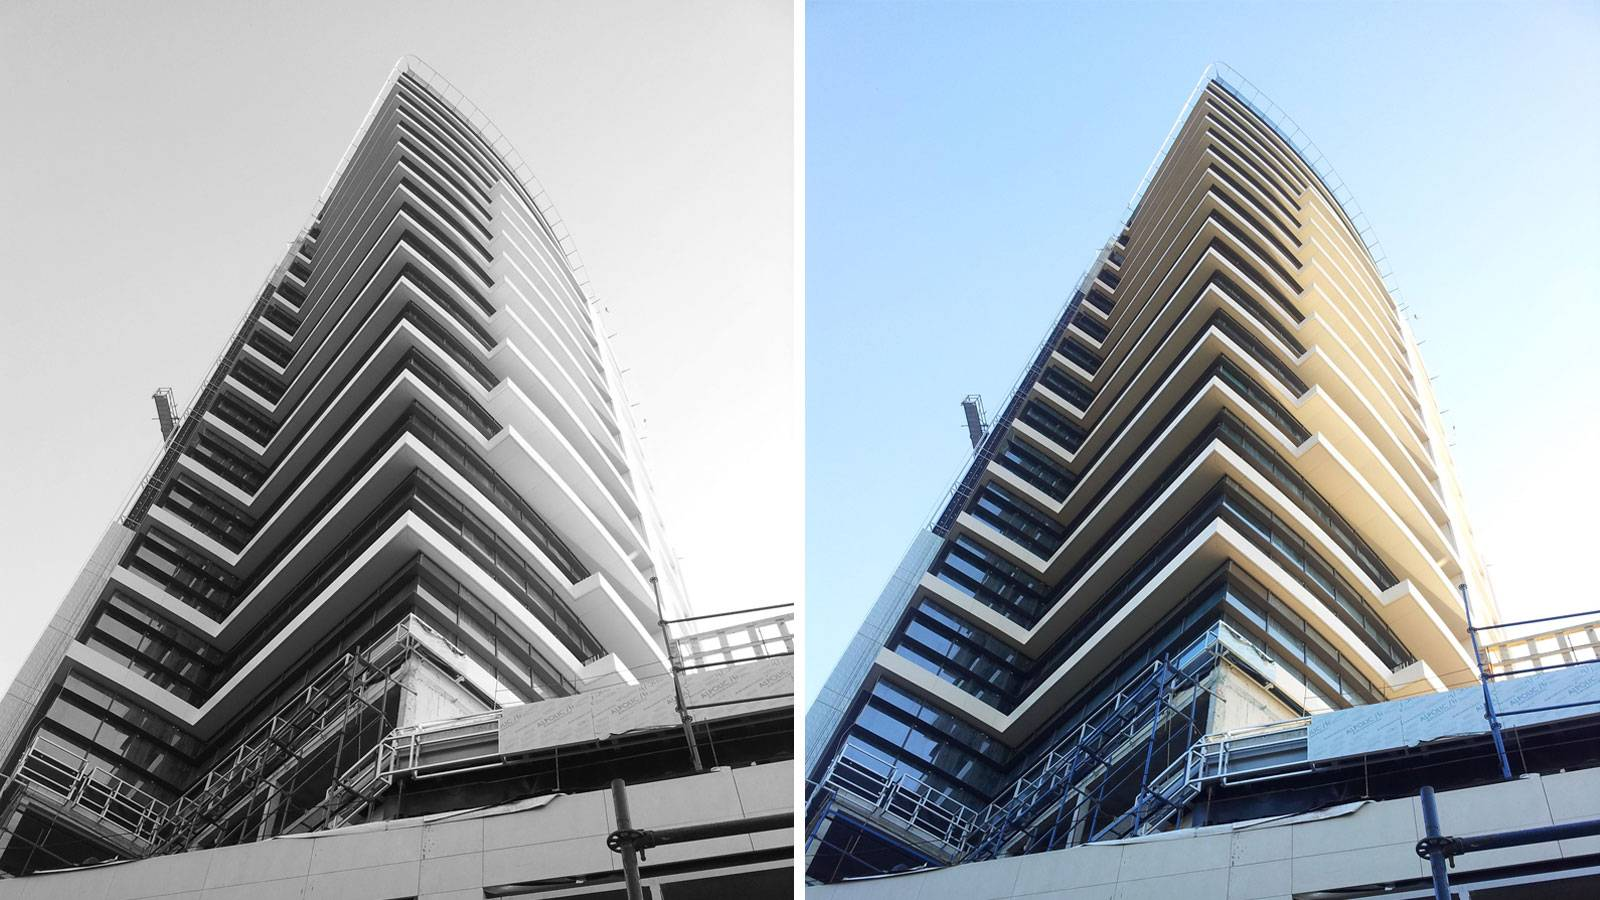 24.05.2013 Adana Sheraton Hotel, designed by iki design group is due to be completed.